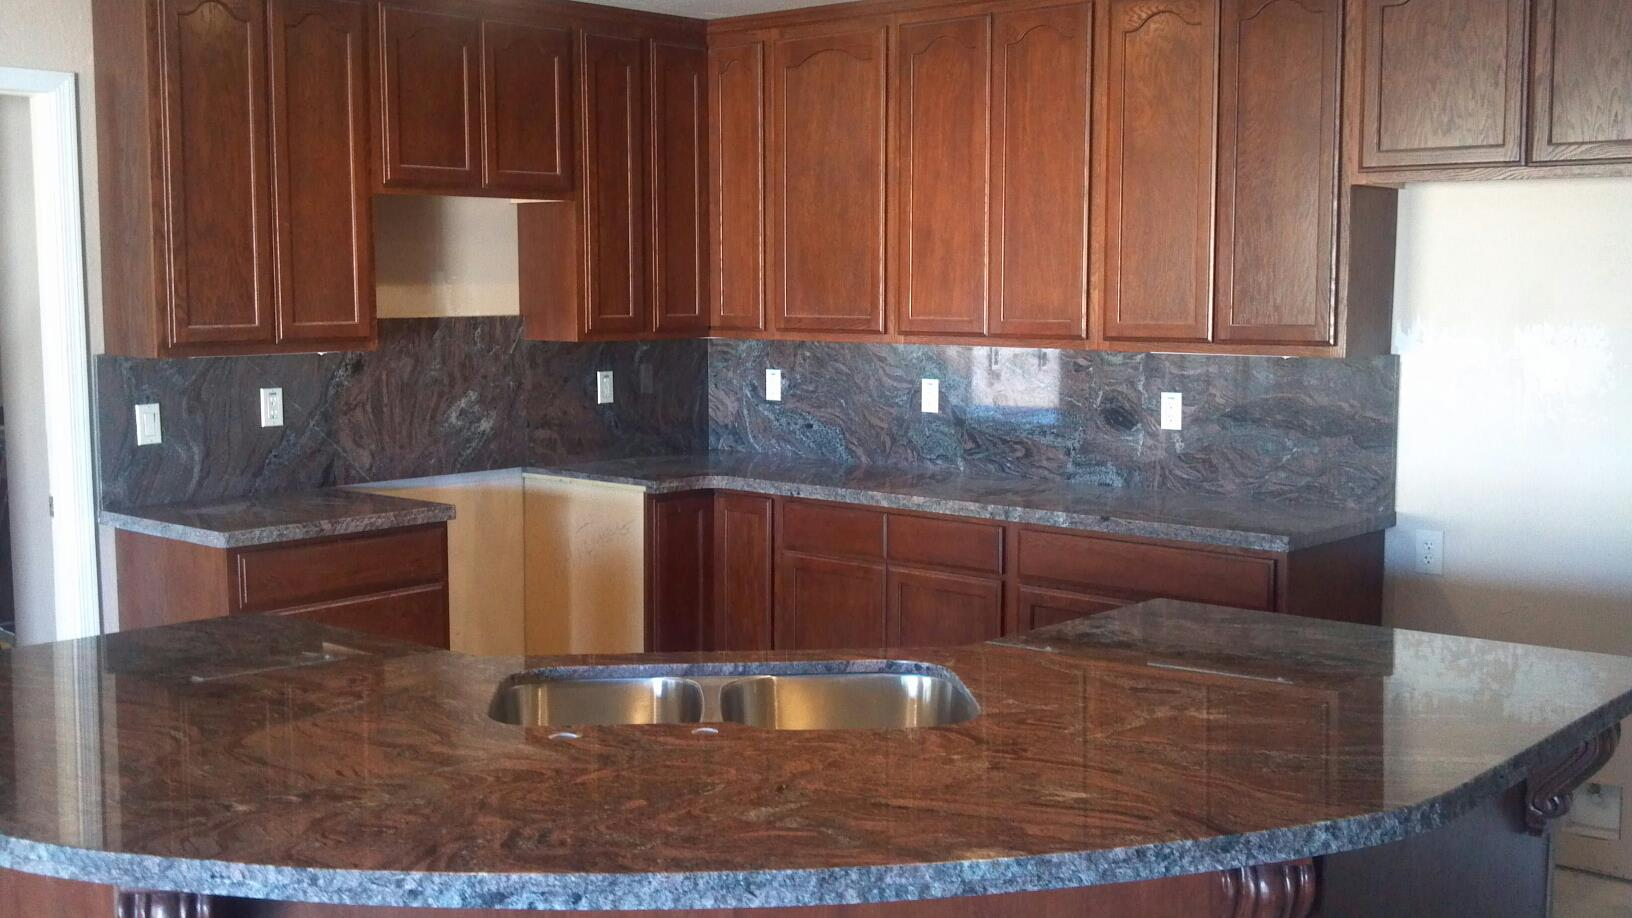 Maple Kitchen Cabinets With Marble Countertops Desert Stone Concepts Home Decorating Resources Home